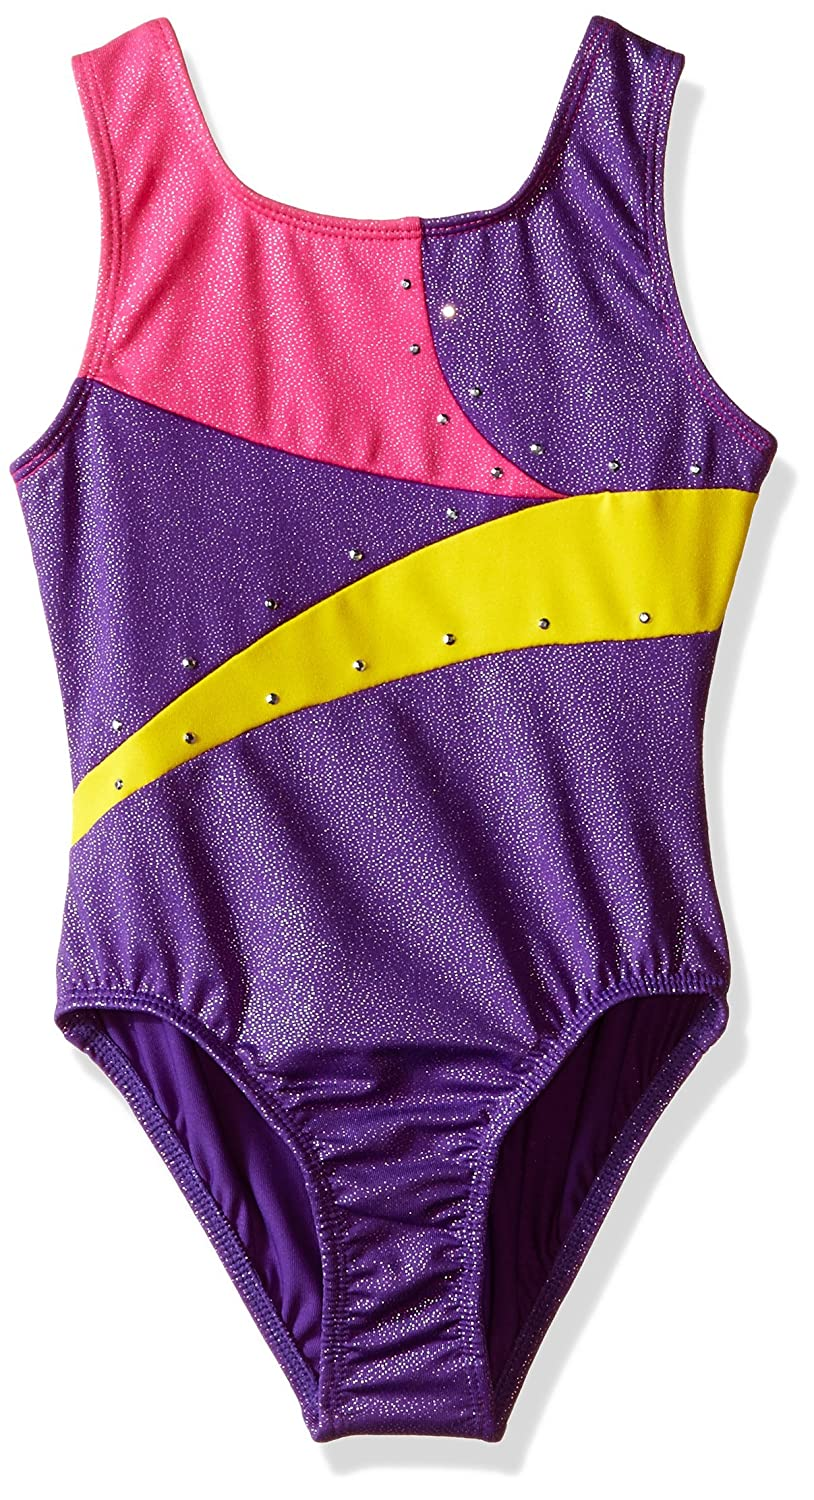 a8402a1256a7 Amazon.com  Jacques Moret Girls  Gymnastics Printed Leotard  Clothing